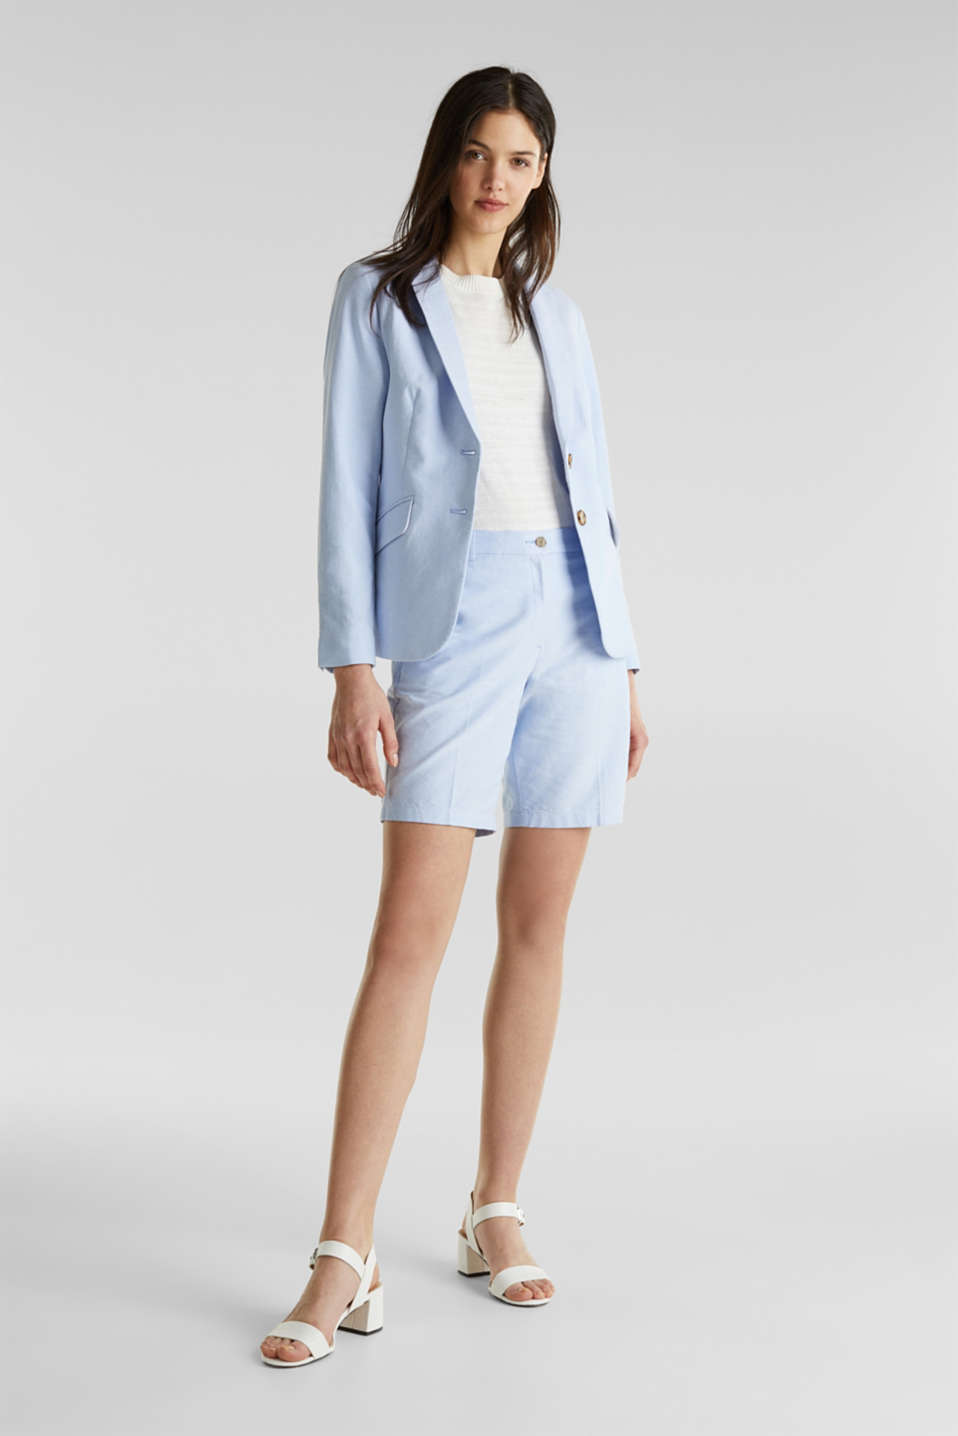 Cotton chambray blazer, LIGHT BLUE, detail image number 1